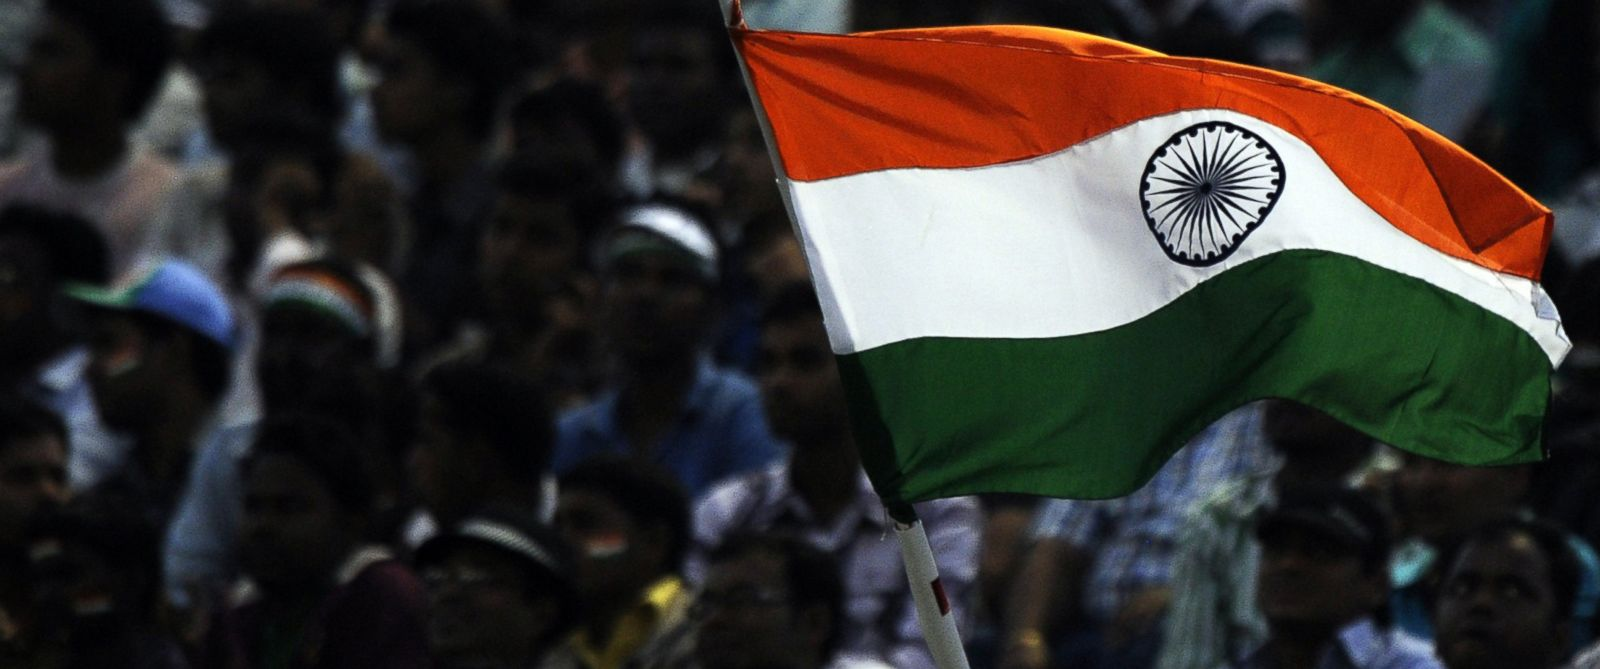 PHOTO: Indian cricket fans celebrate as they wave their national flag during the first One Day International (ODI) match between Indian and West Indies at the Barabati Stadium in Cuttack, on Nov. 29, 2011.